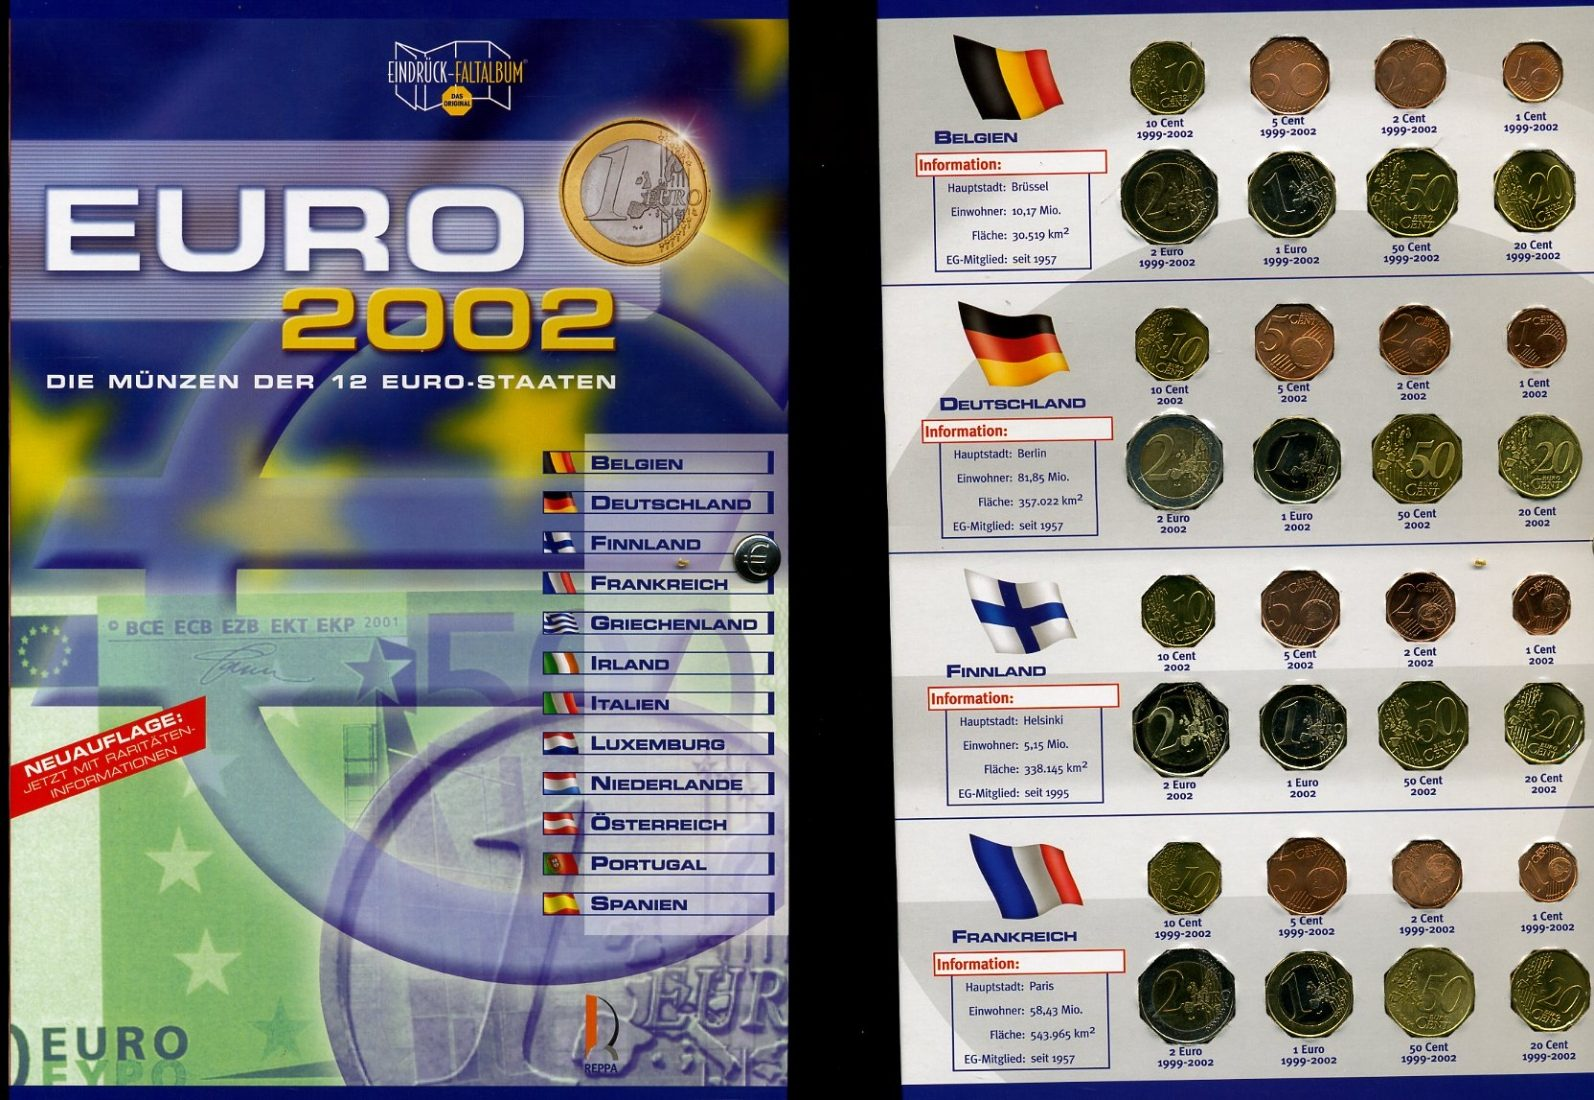 reppa folder euro 2002 mit 12 s tzen 2002 euro sammlung deutschland finnland etc reppa folder. Black Bedroom Furniture Sets. Home Design Ideas